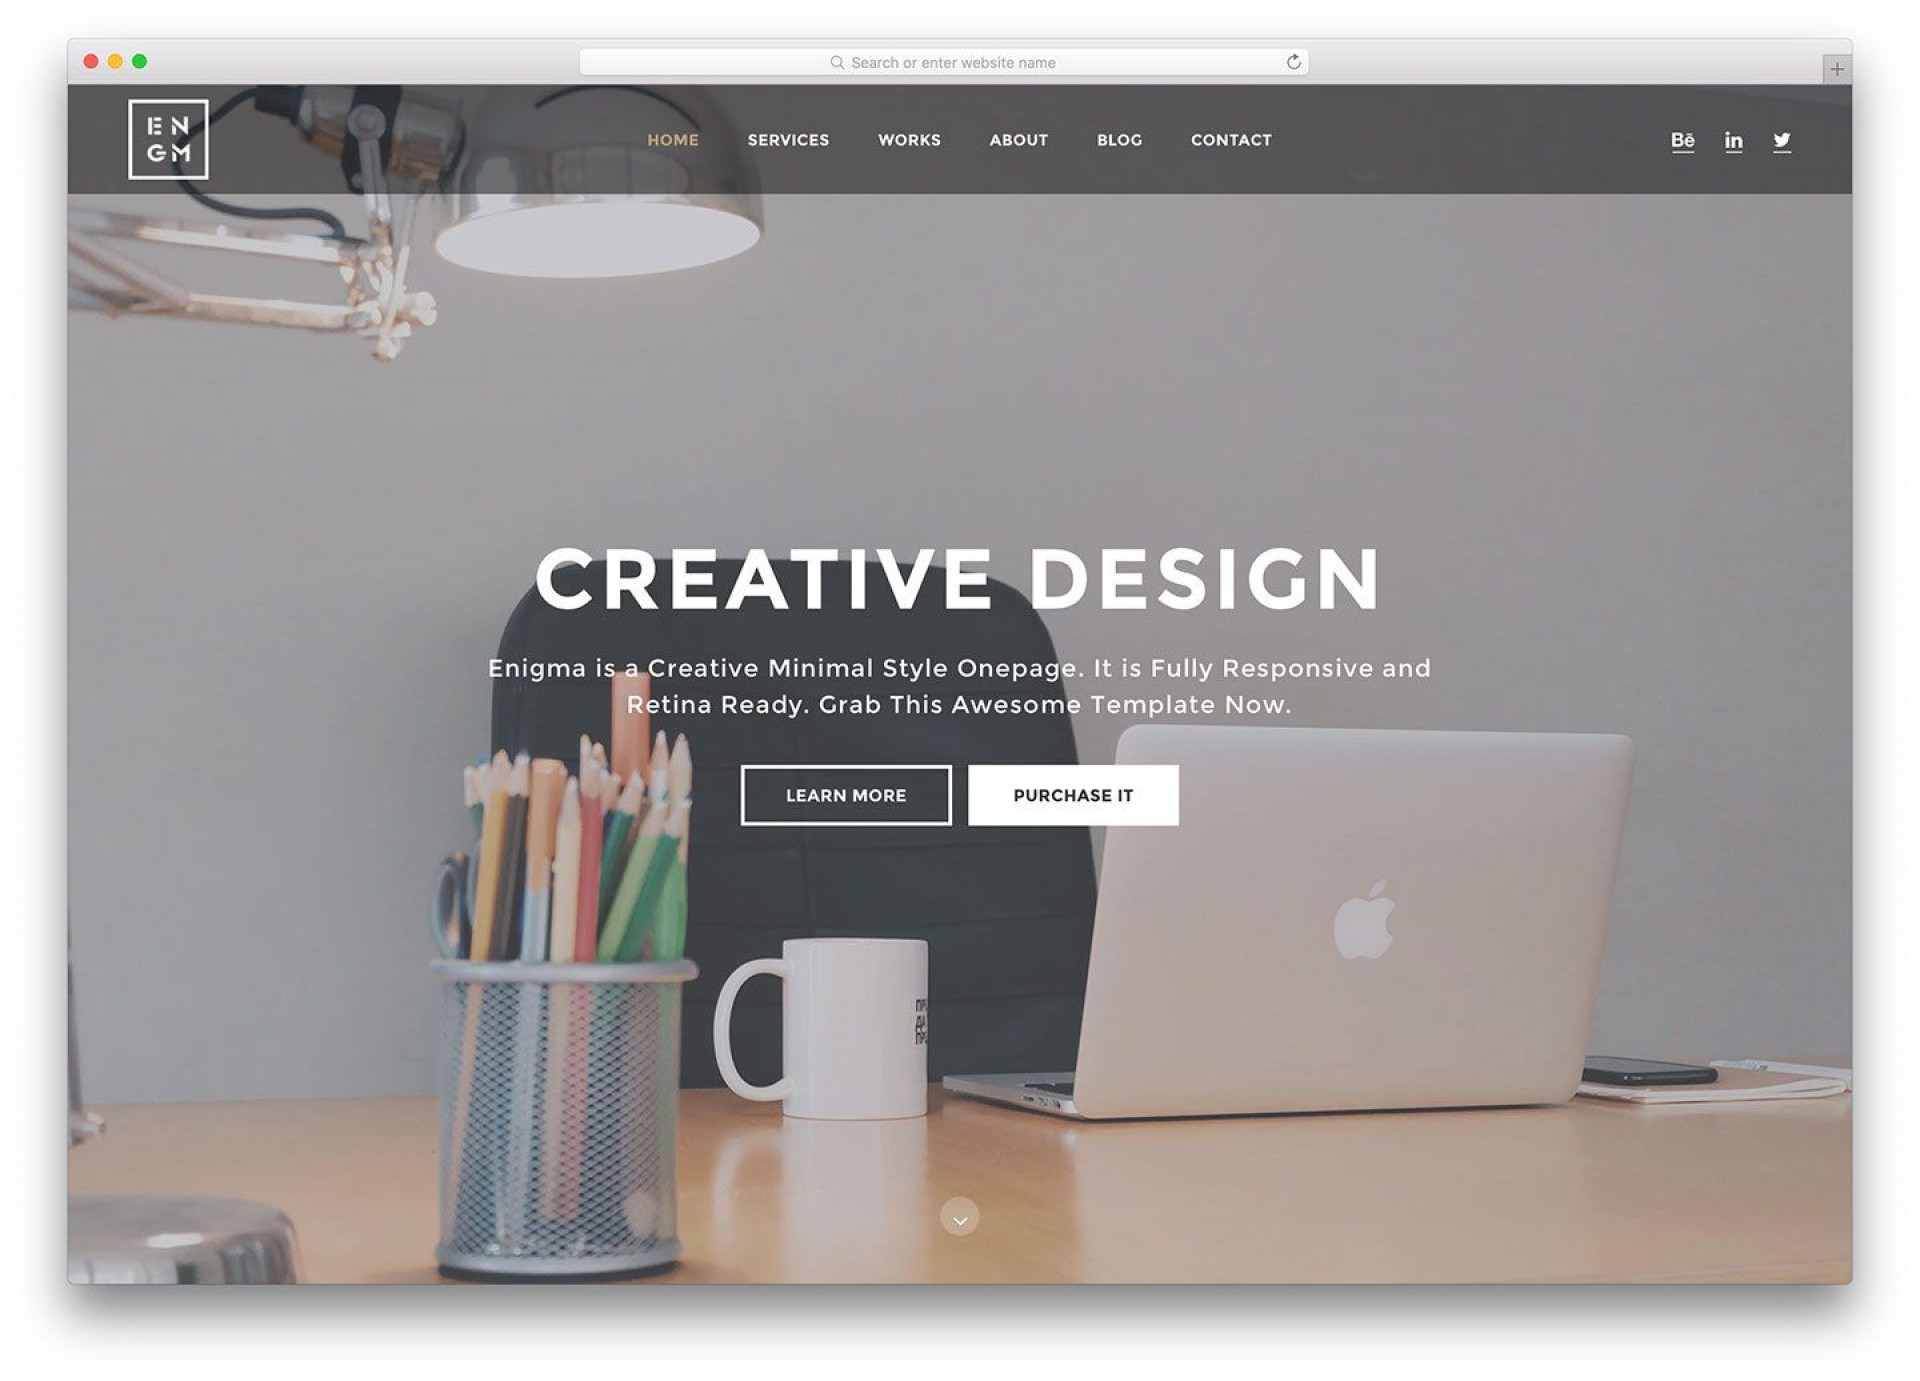 007 Dreaded Website Template Html Cs Free Download Highest Quality  Registration Page With Javascript Jquery Responsive Student Form1920